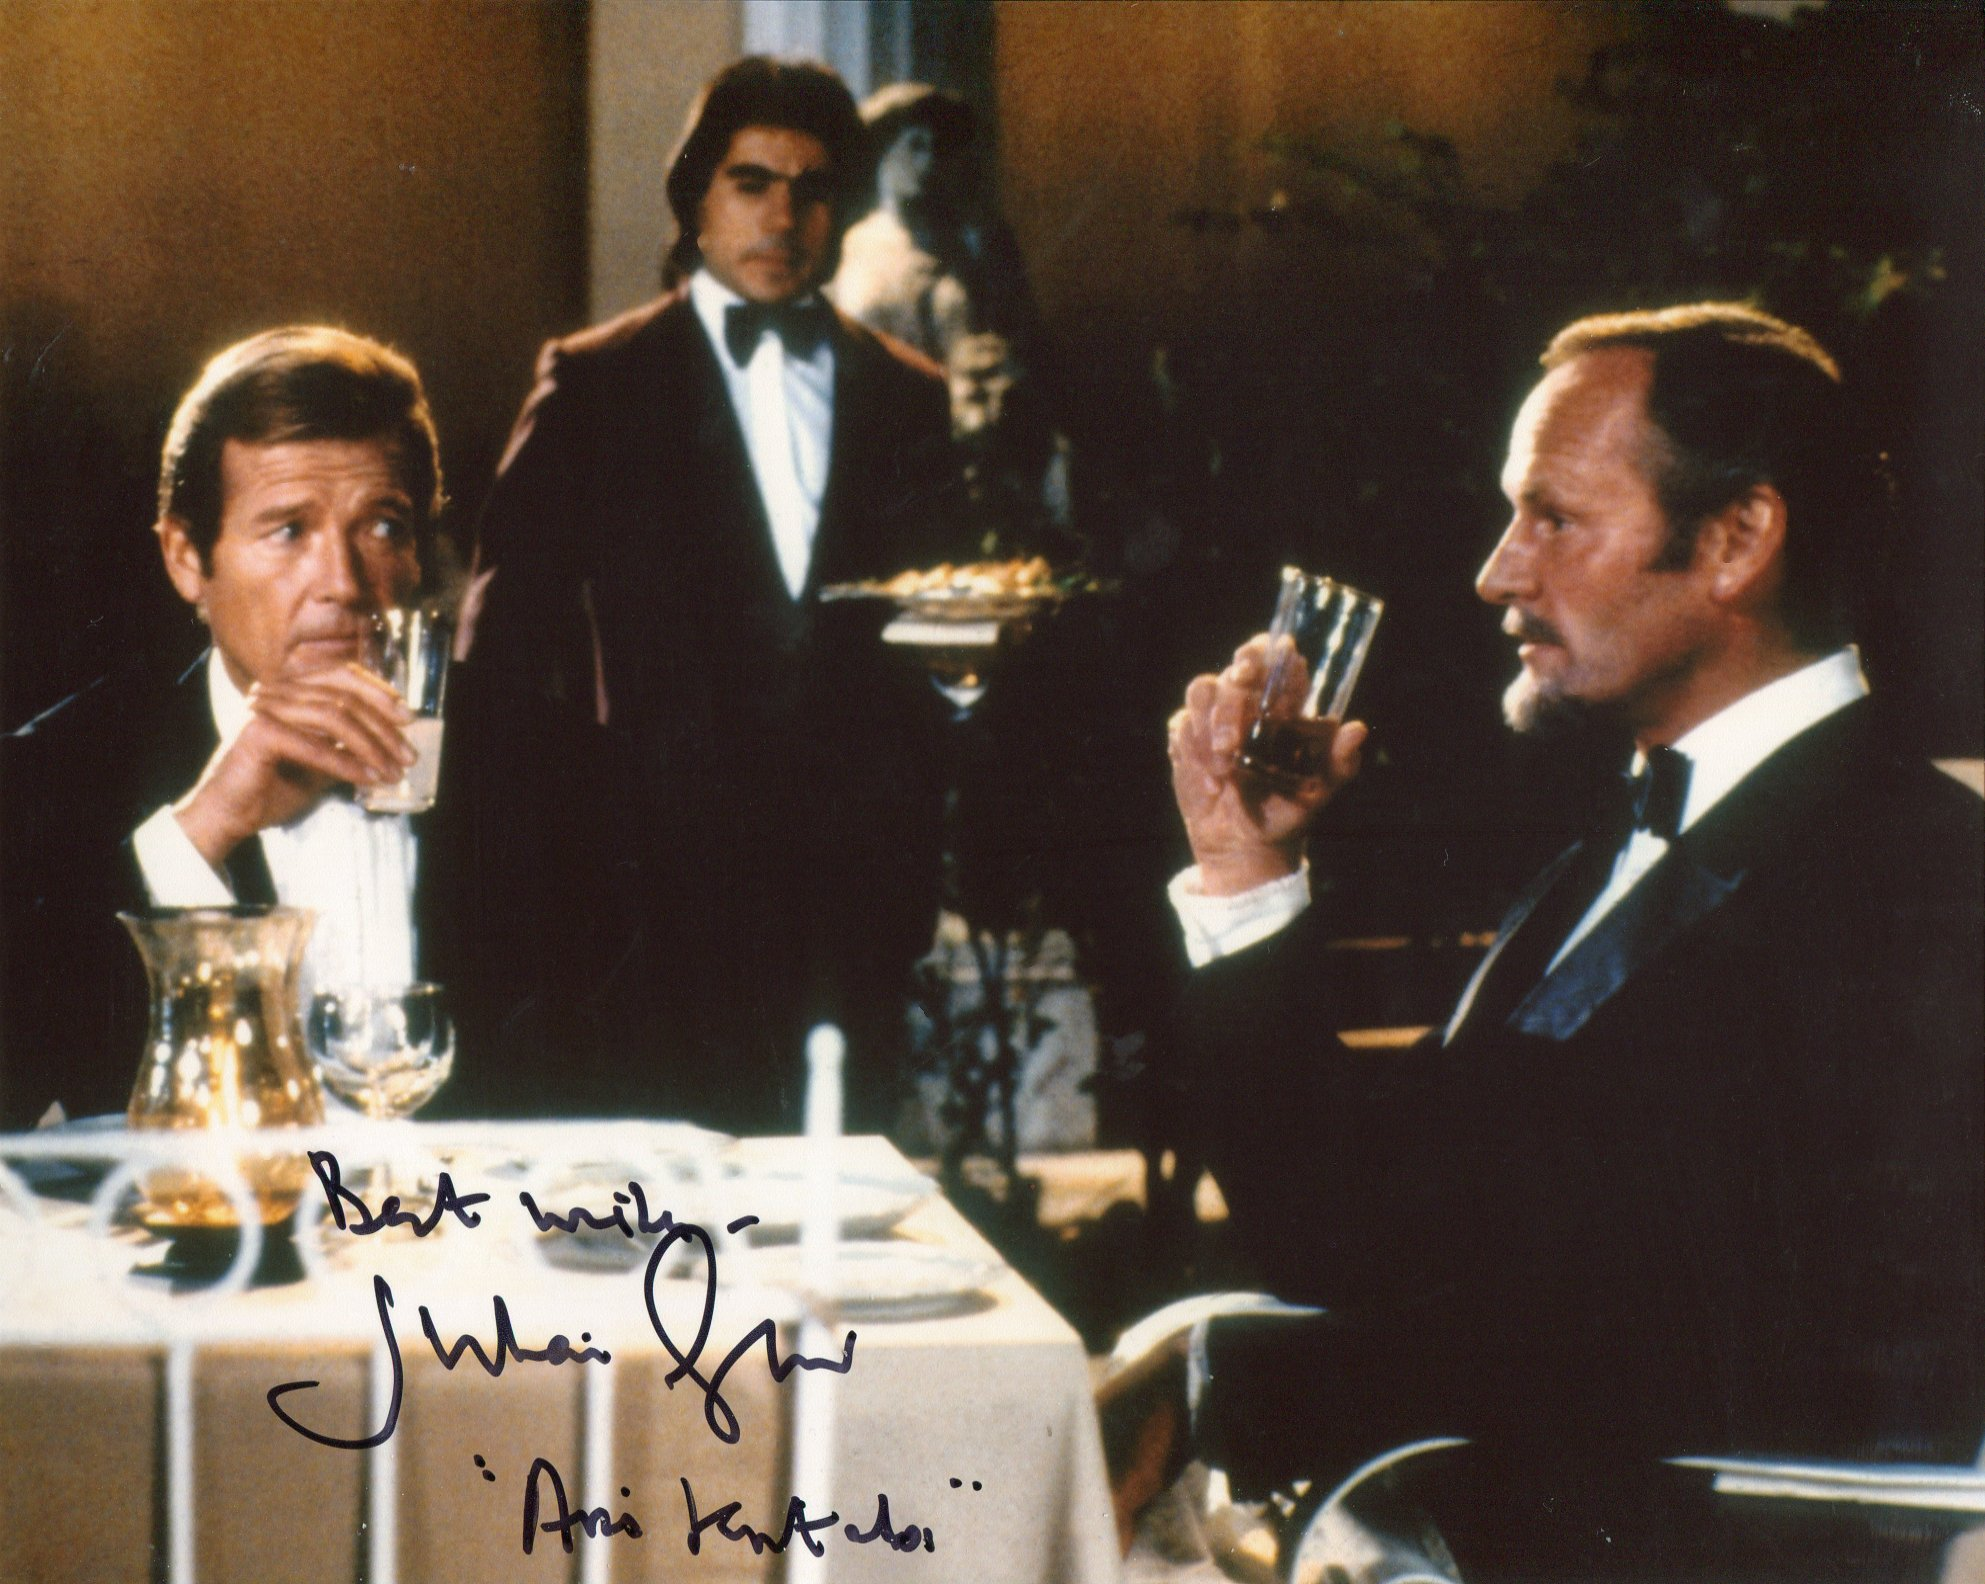 007 James Bond bad guy Julian Glover as Kristatos signed 8x110 photo, he has also added his